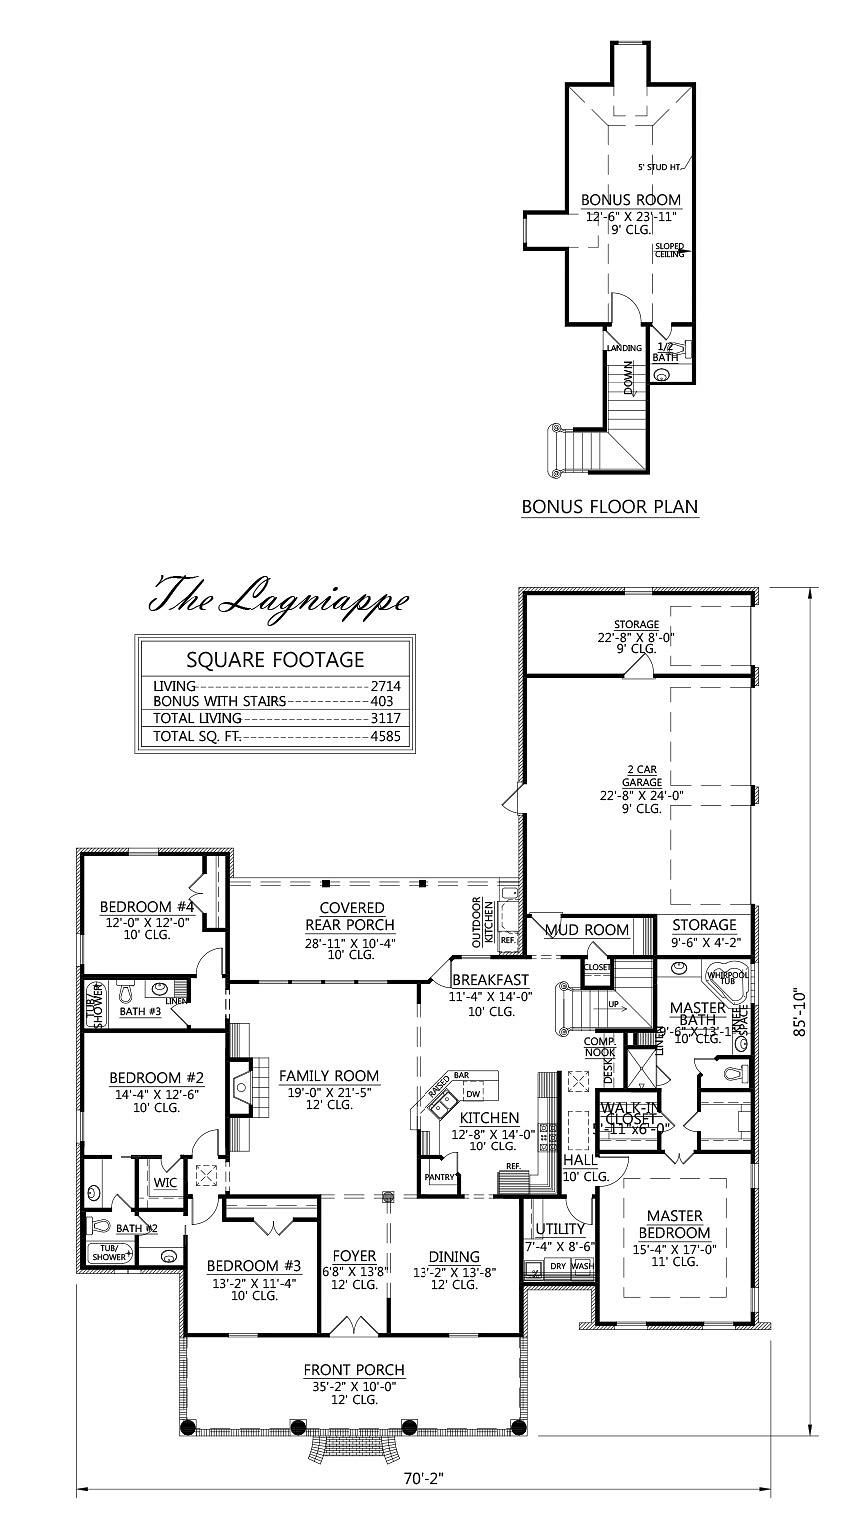 madden home design - the lagniappe 2714 sq ft | floor plans